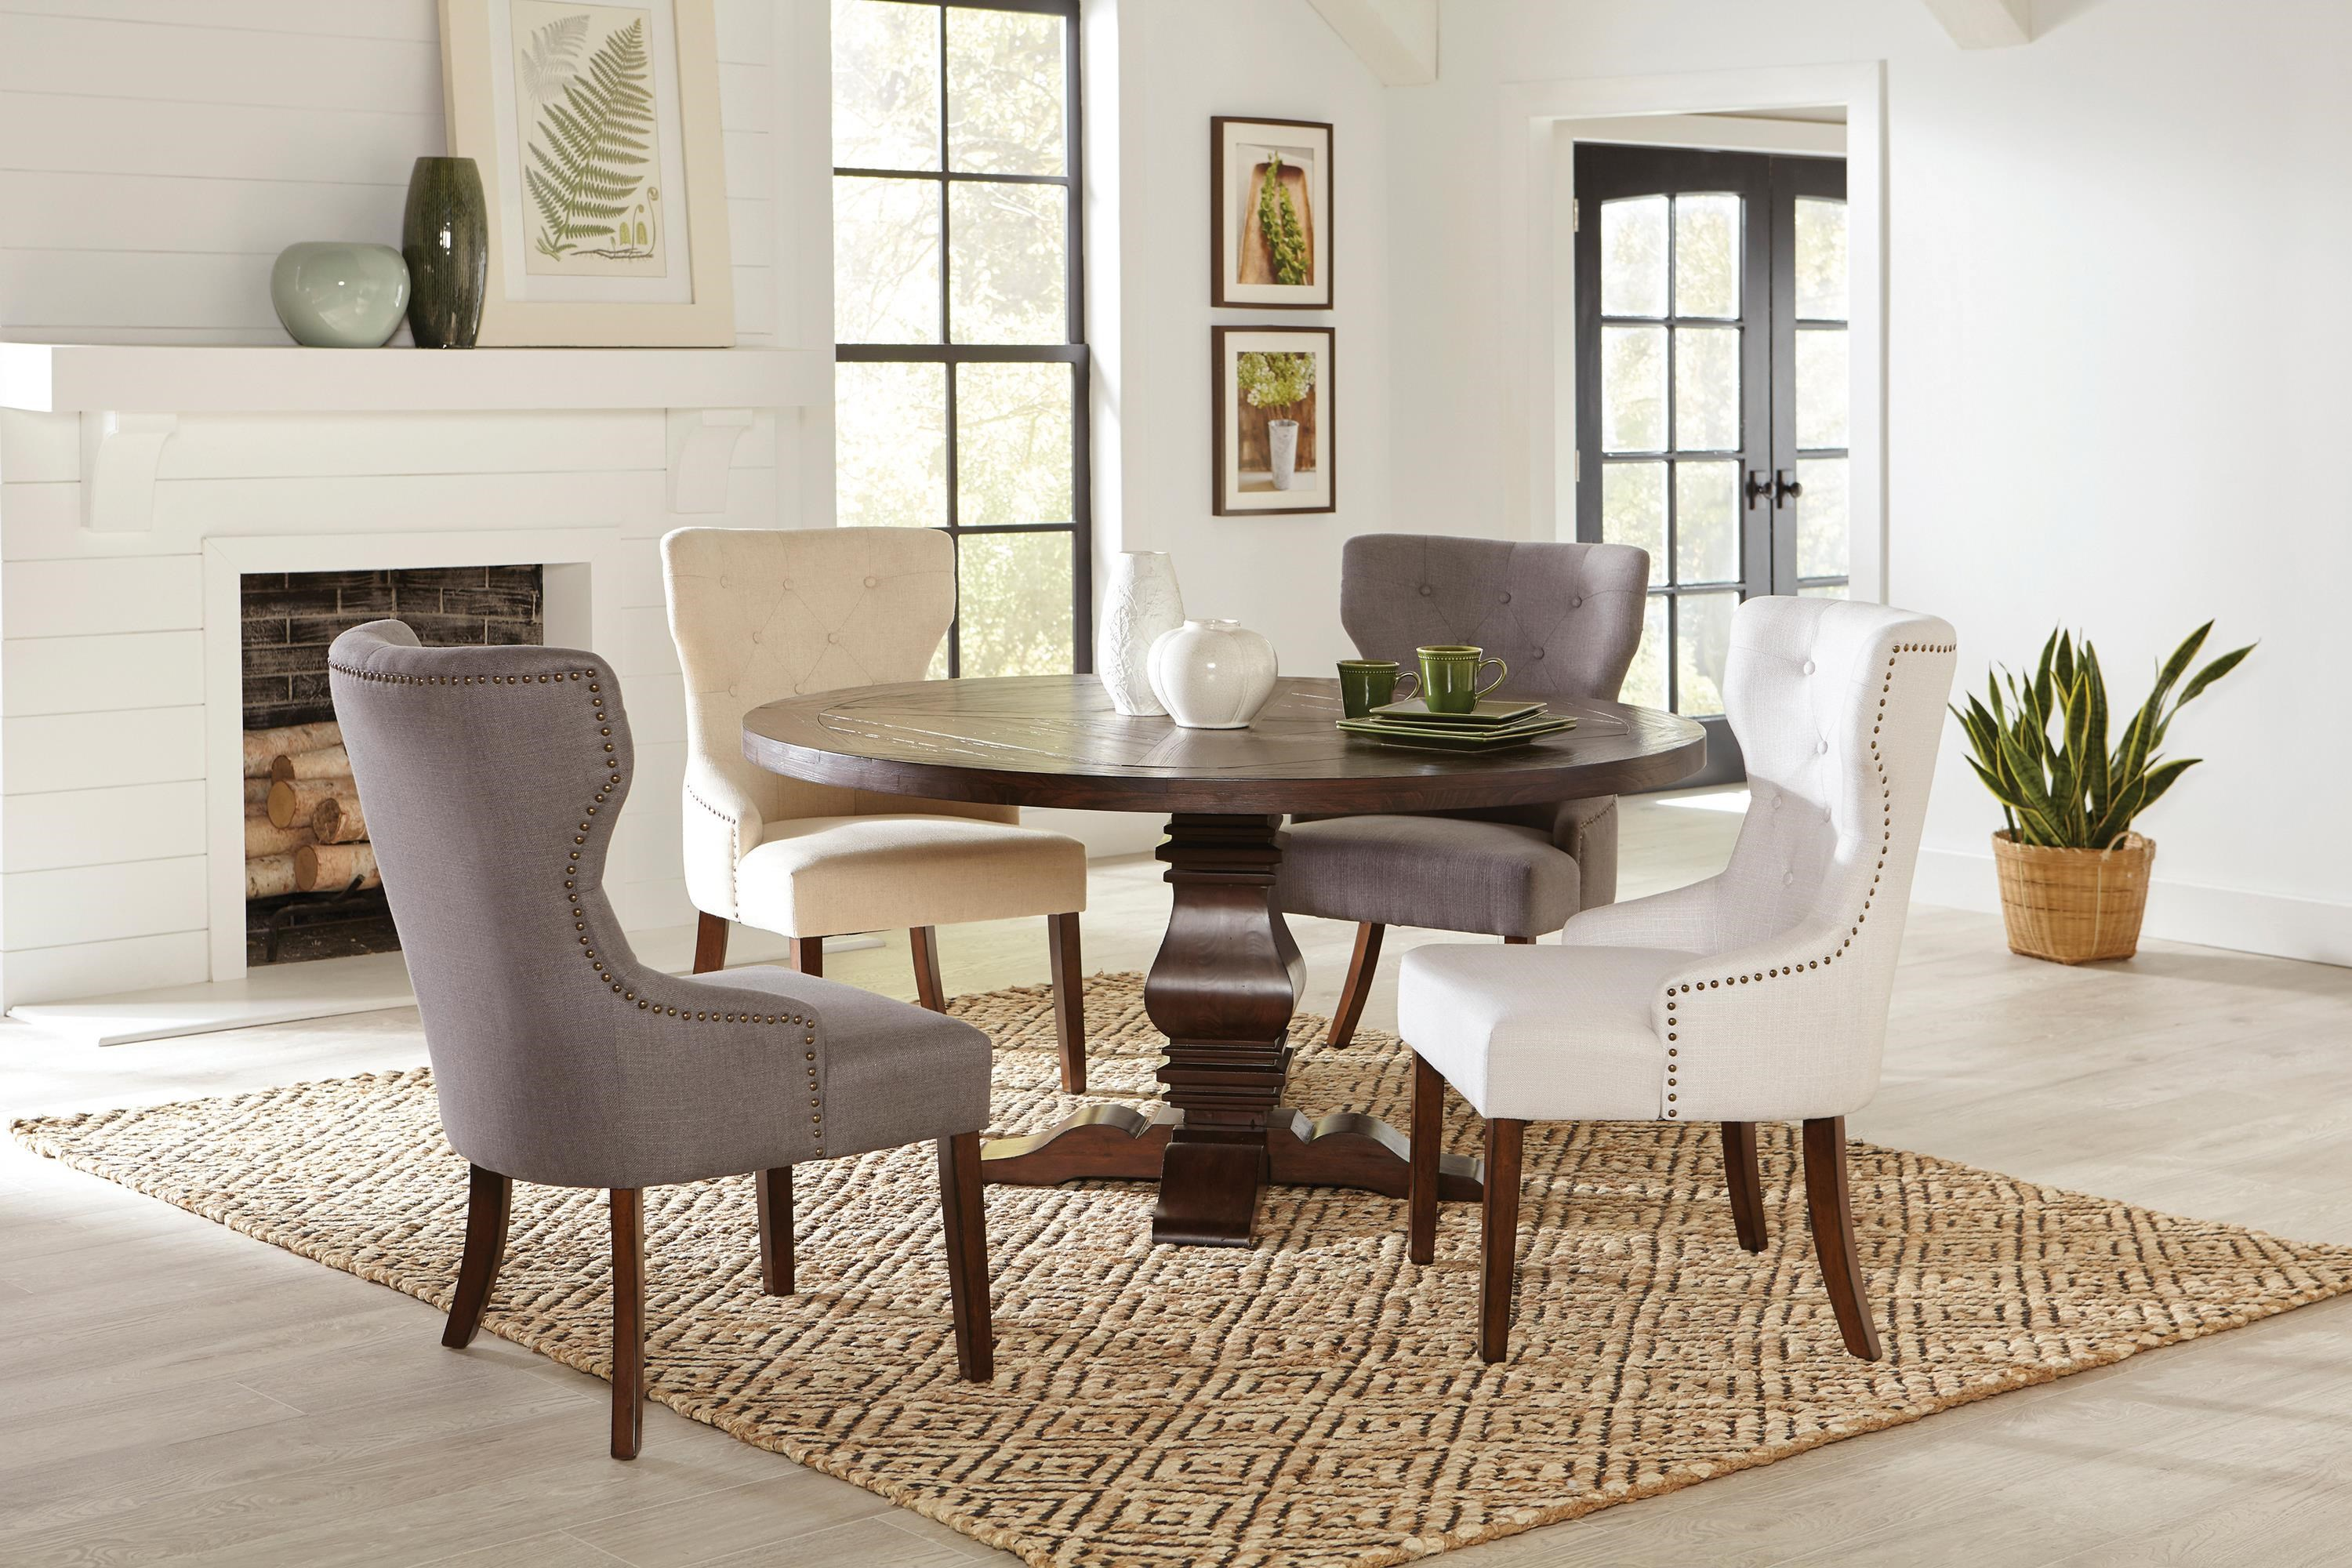 Florence 5-Piece Round Dining Set w/ Grey Chairs by Coaster at Beck's Furniture